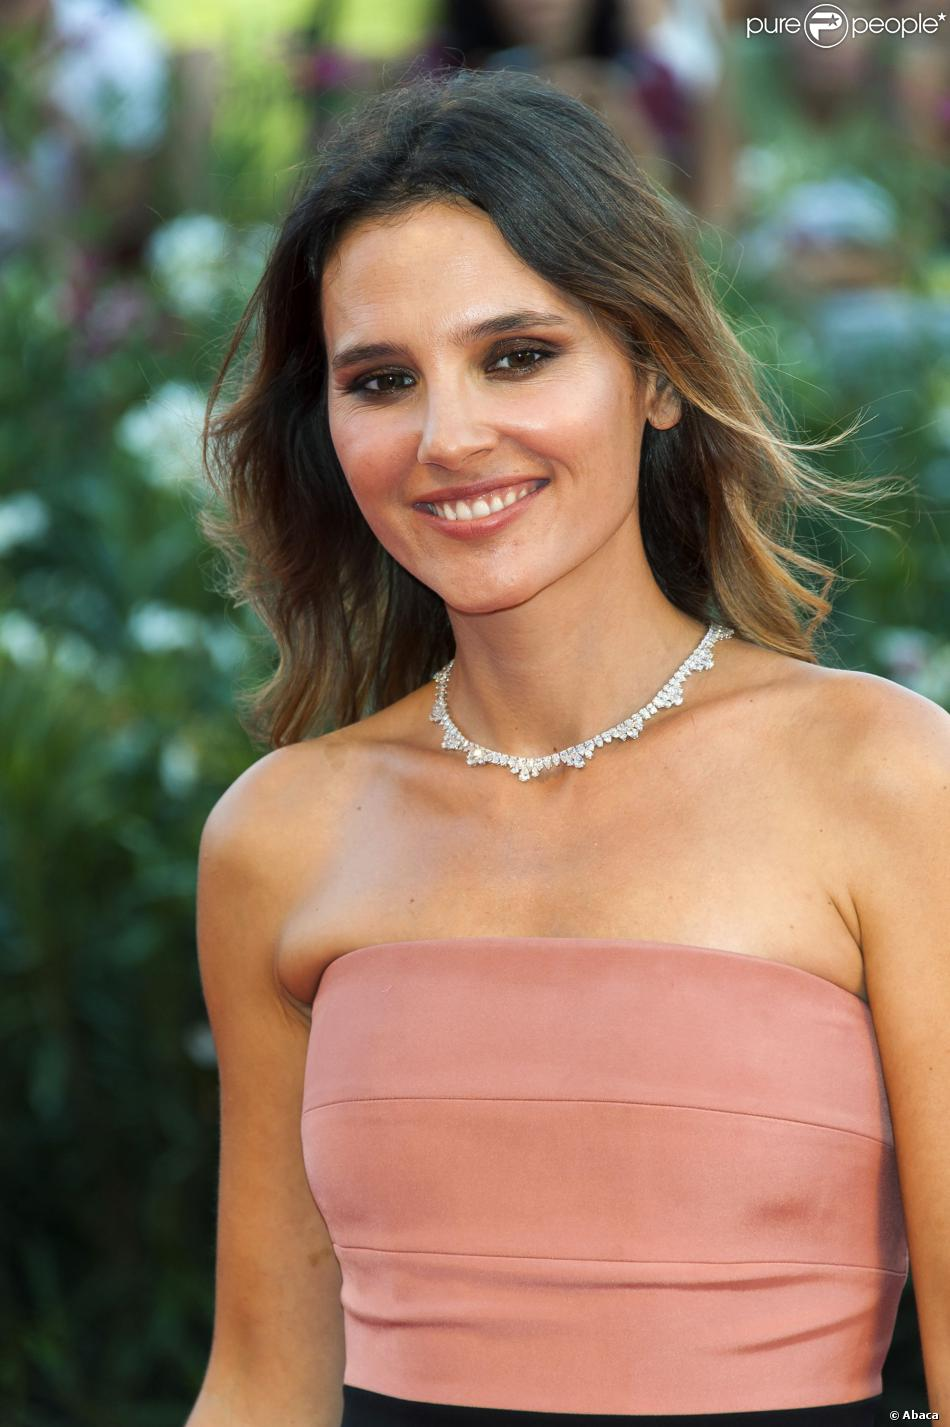 Virginie Ledoyen earned a  million dollar salary - leaving the net worth at 6 million in 2018